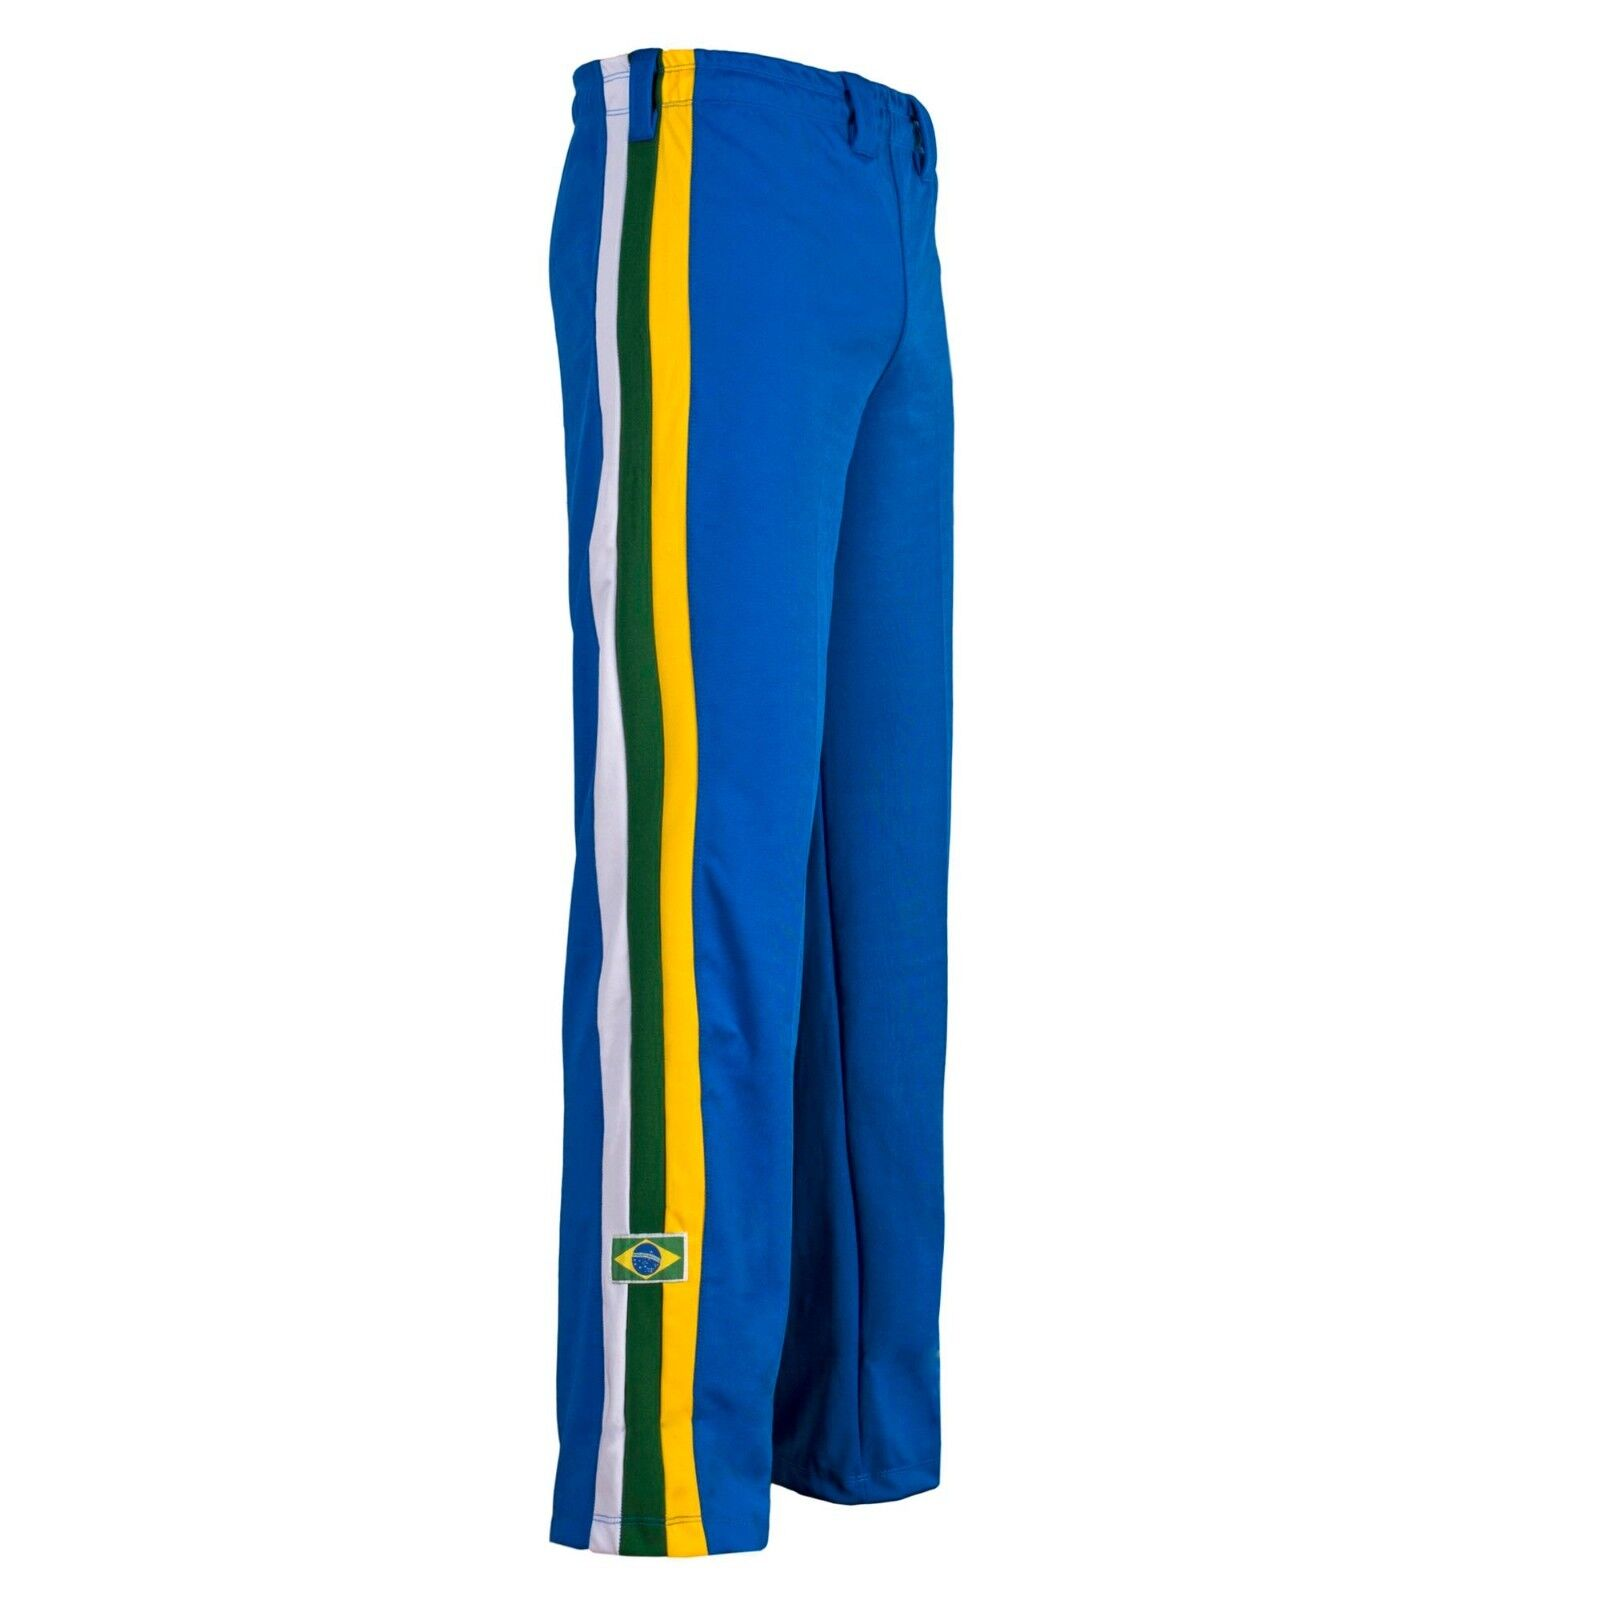 Unisex bluee Brazil Capoeira Abada Martial Arts Elastic Trousers Pants 6 Sizes